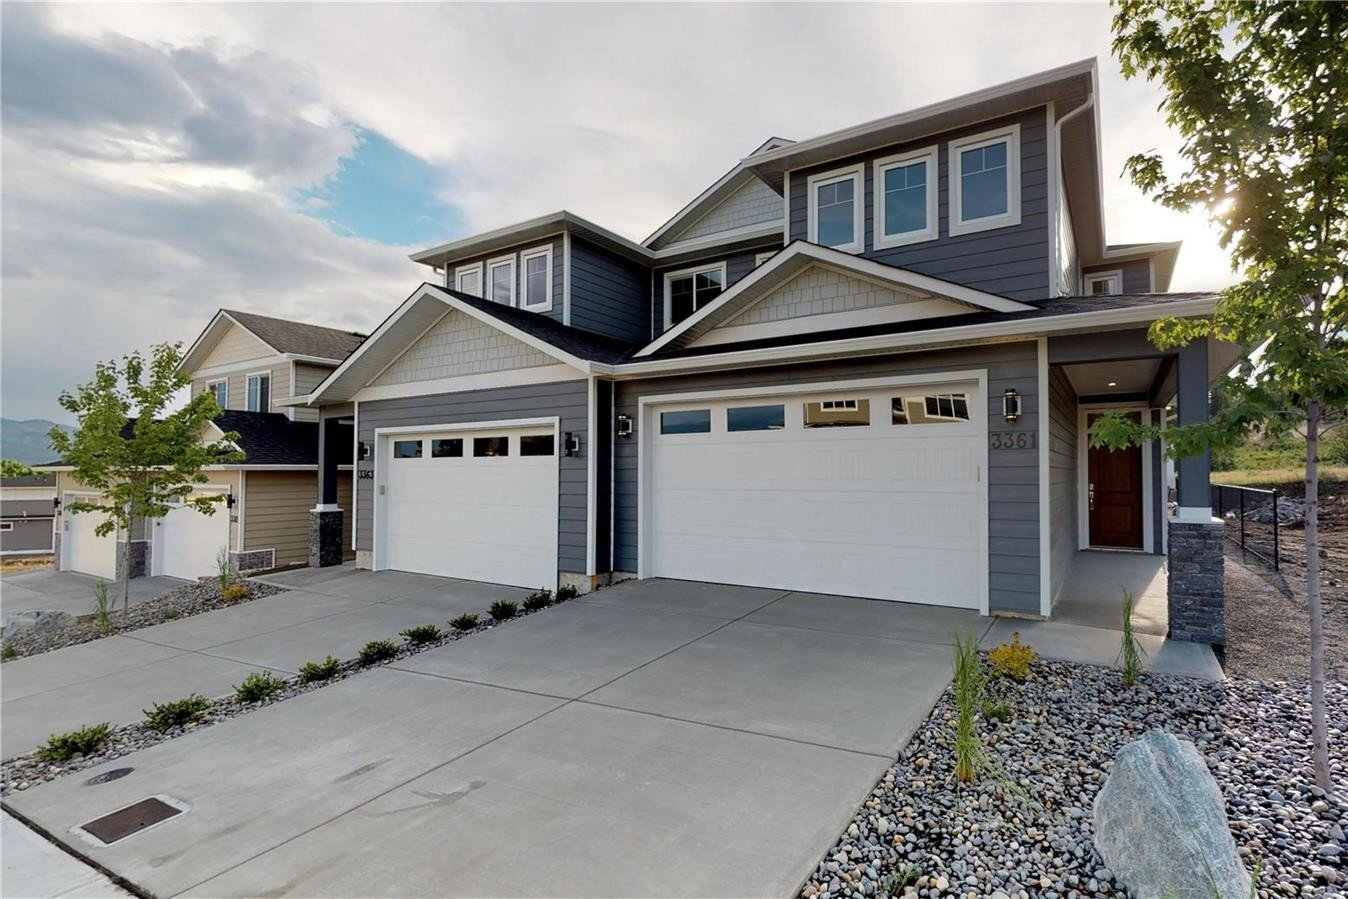 House for sale at 2357 Hawks Blvd Westbank British Columbia - MLS: 10217980